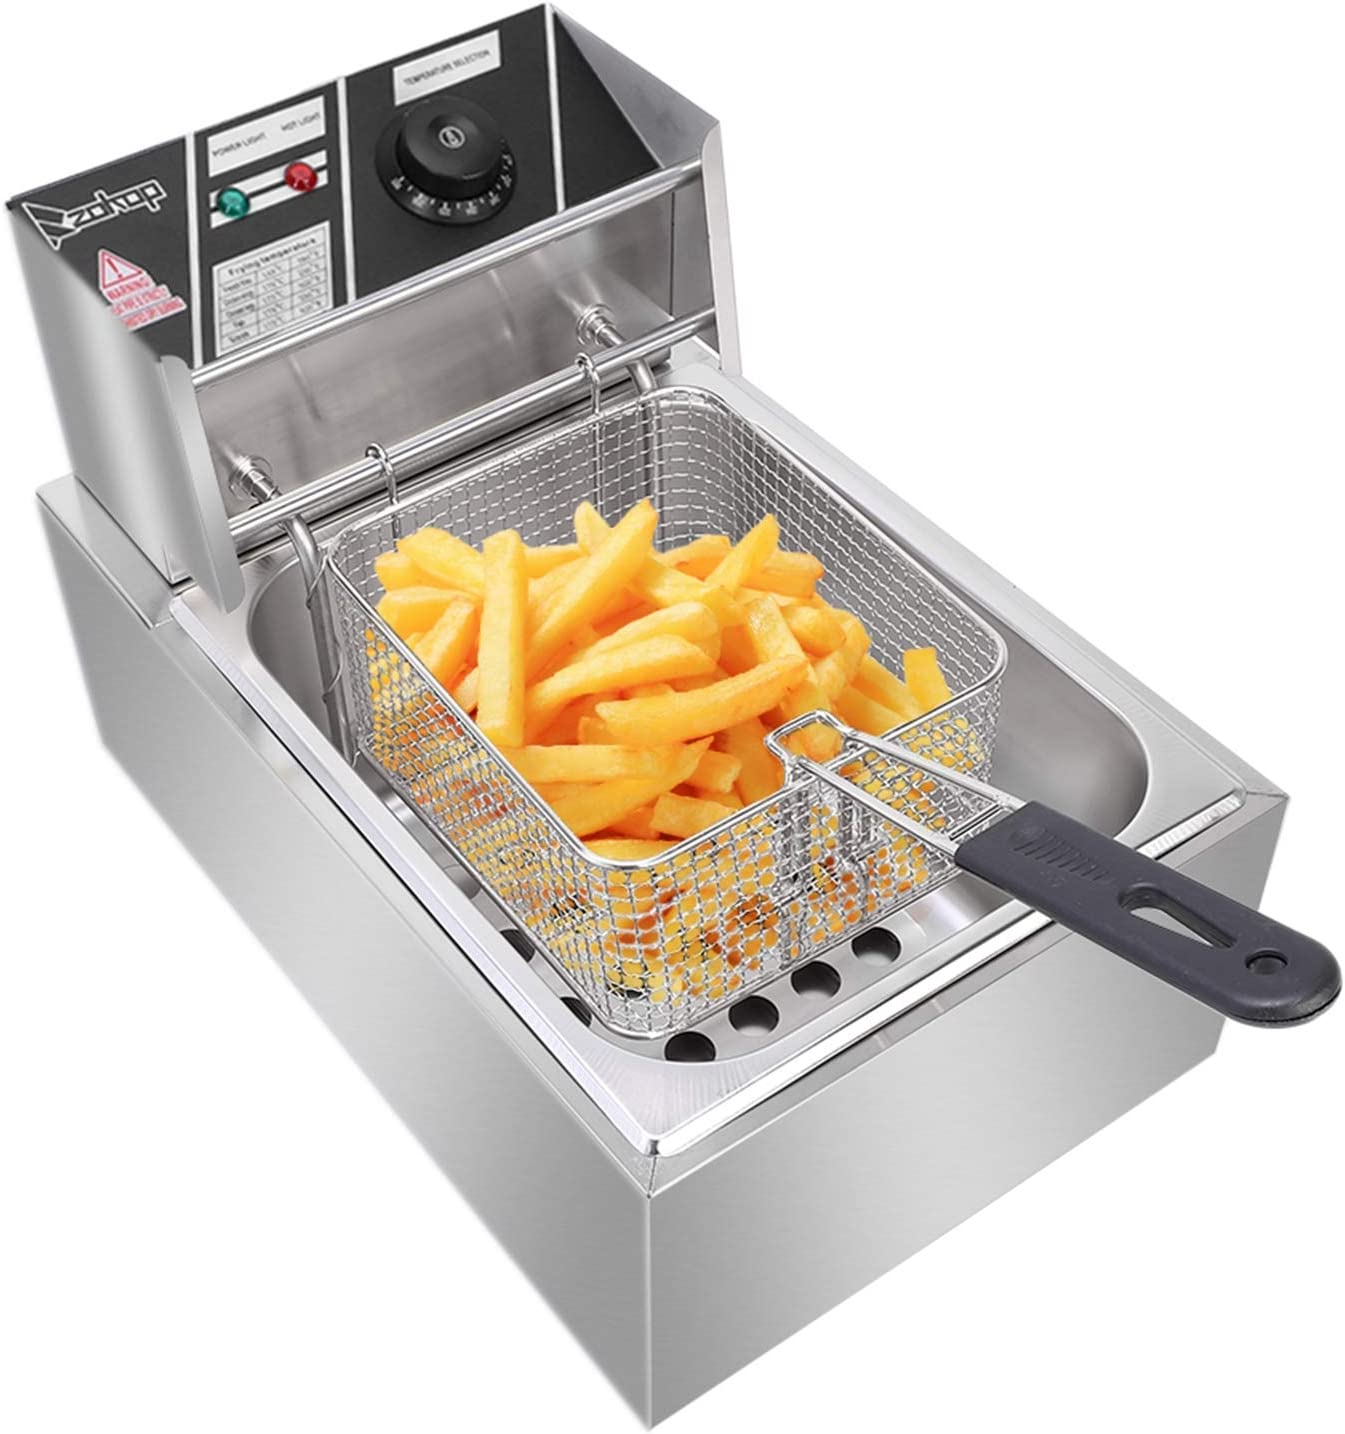 6L Commercial Deep Fryer for the Home with Basket & Lids, Stainless Steel Electrical Deep Fryer with Temperature Control, Outdoor Fry Daddy Deep Fryer for Chicken Fish French Fries 2500W